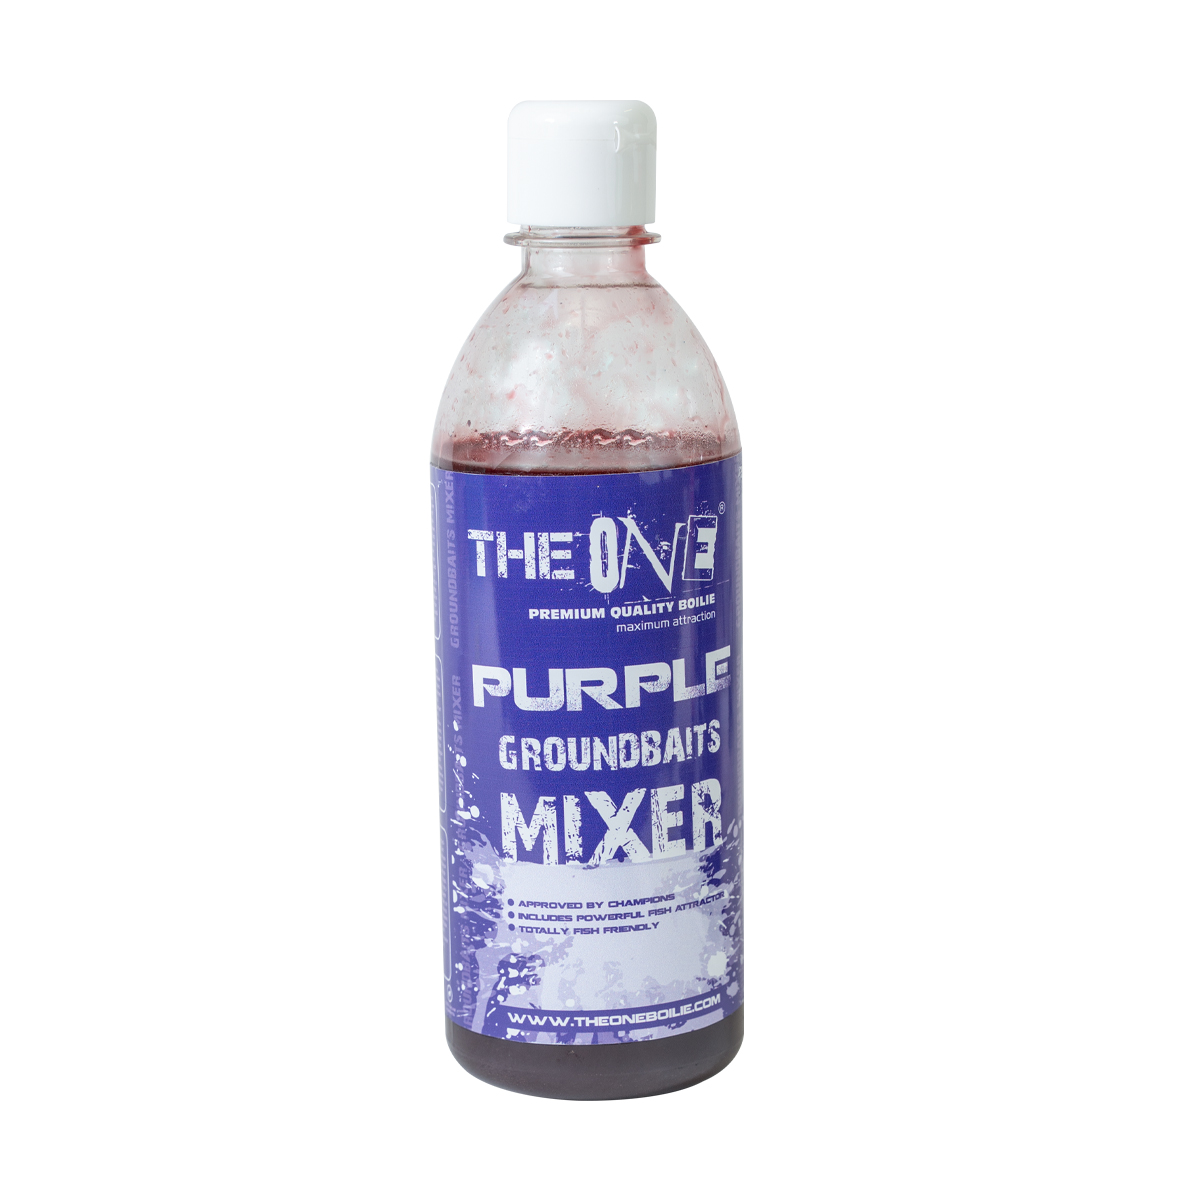 THE ONE GROUNDBAITS MIXER 500ml PURPLE